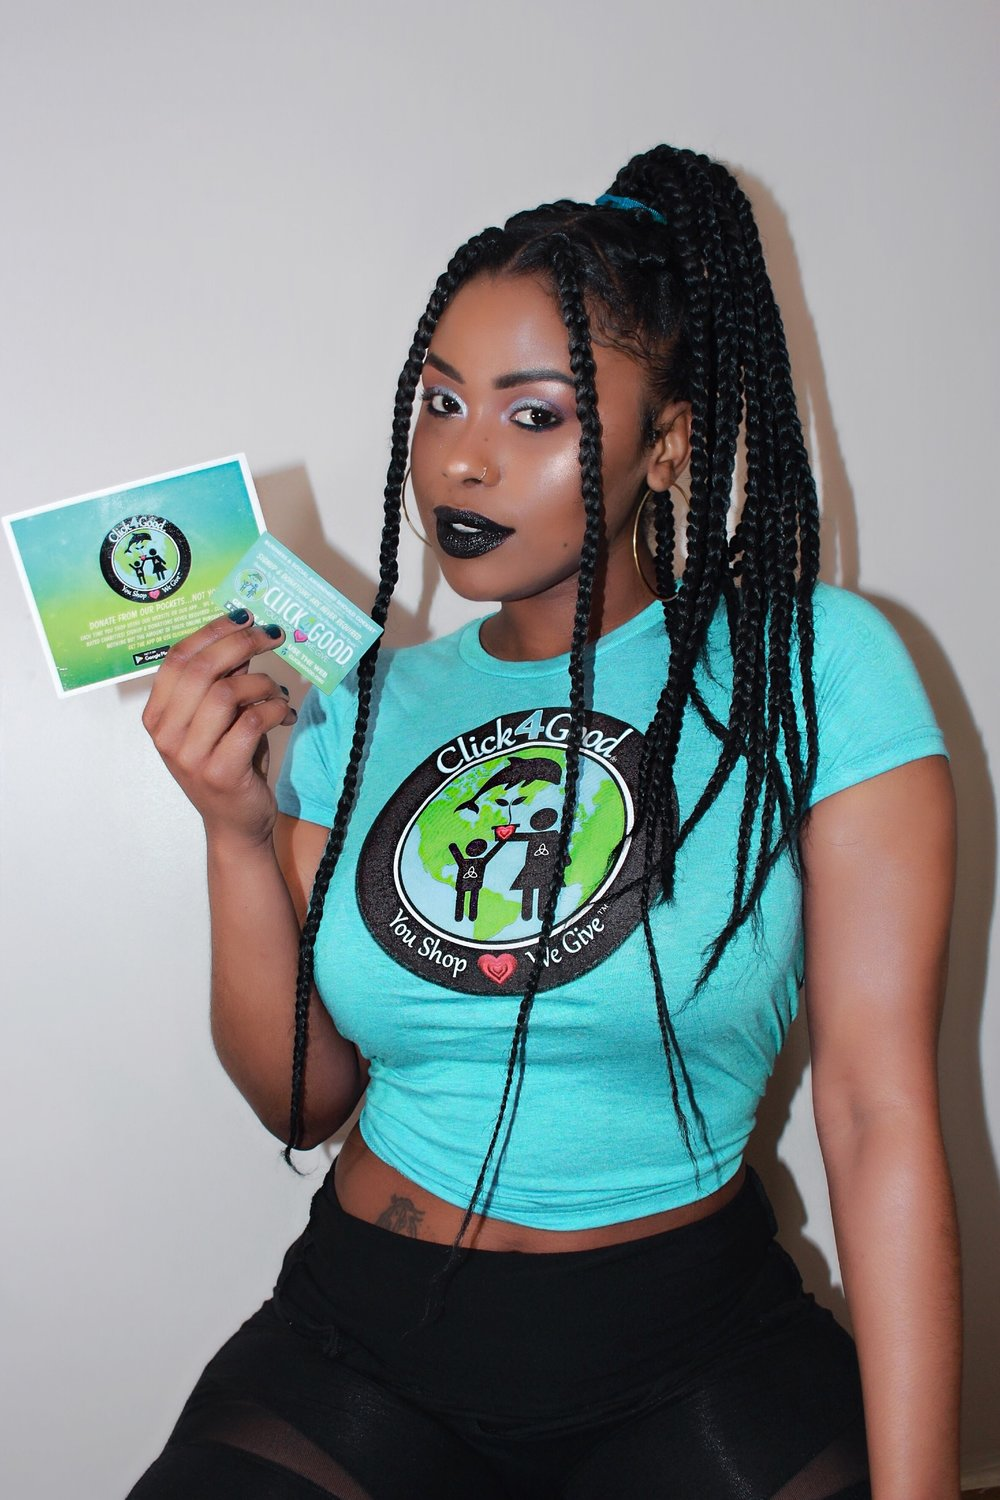 #SpreadTheLove Tell People About #Click4Good - Model: arielashantiii Photographer: @britefuture_